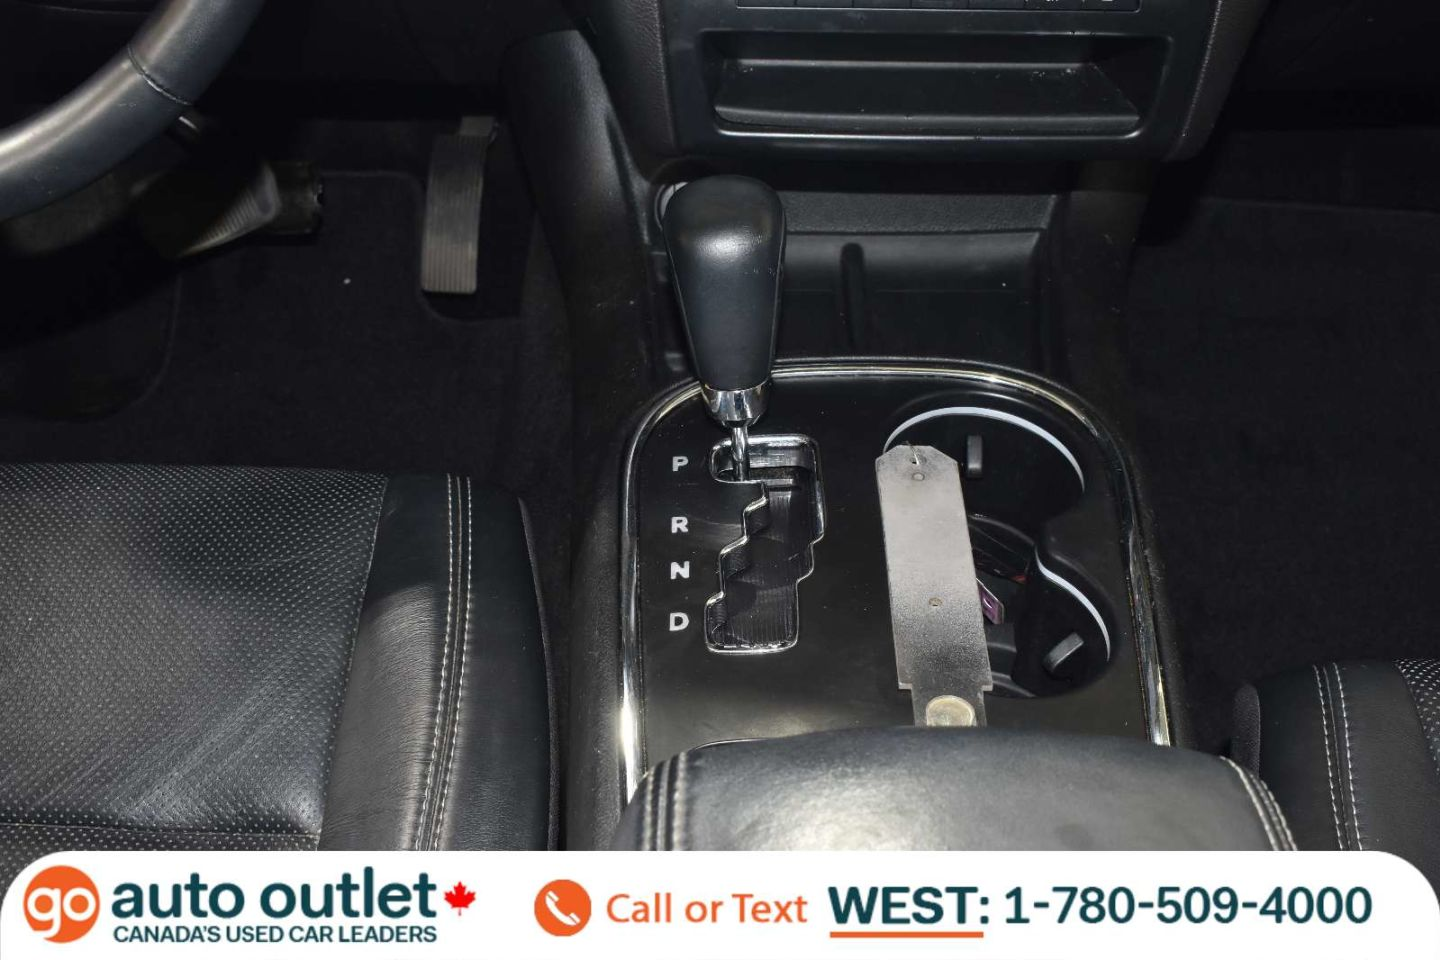 2013 Dodge Durango Citadel for sale in Edmonton, Alberta